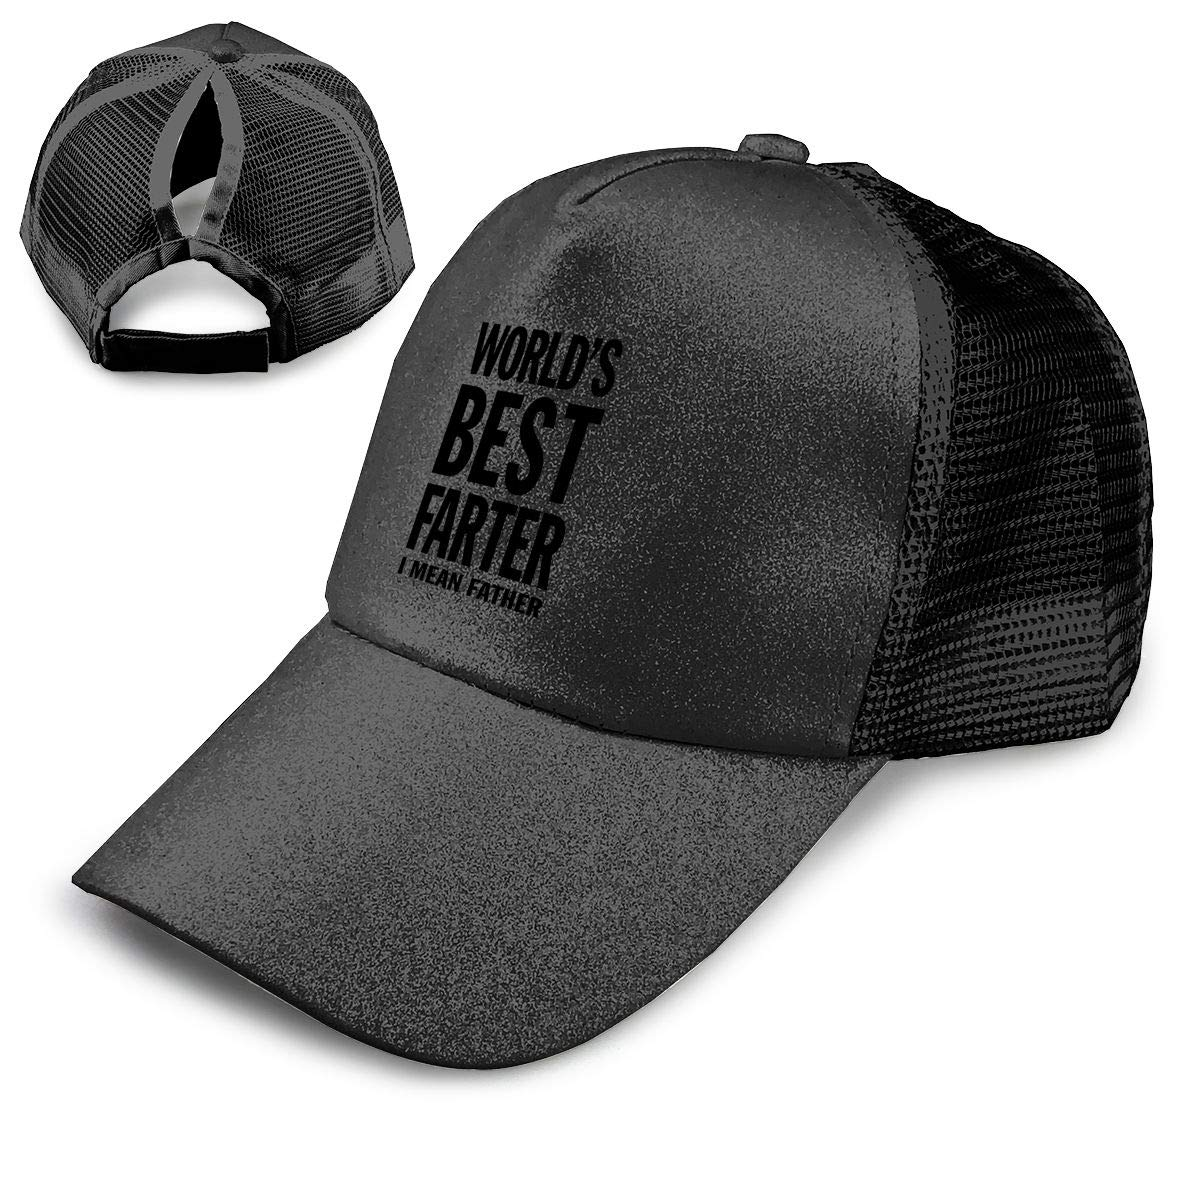 Worlds Best Farter I Mean Father Funny Gift for Dad Ponytail Messy High Bun Hat Ponycaps Baseball Cap Adjustable Trucker Cap Mesh Cap